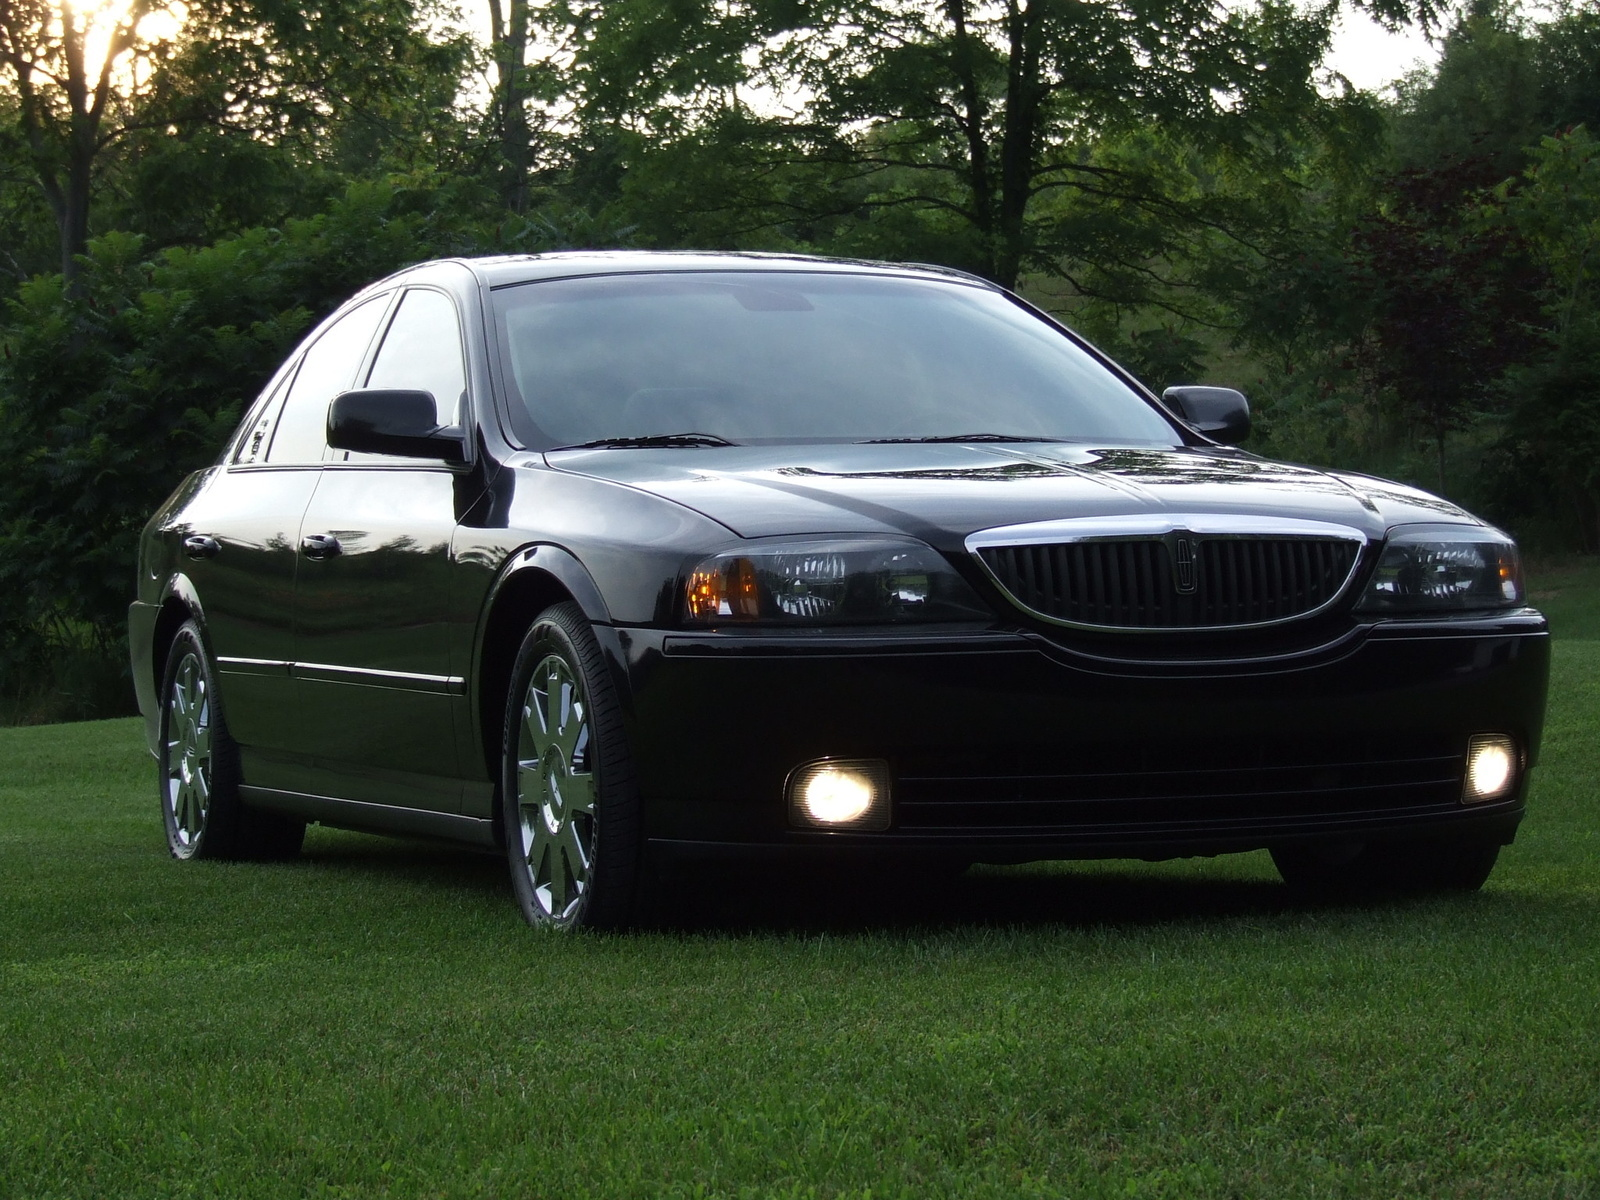 2003 Lincoln Ls - Overview